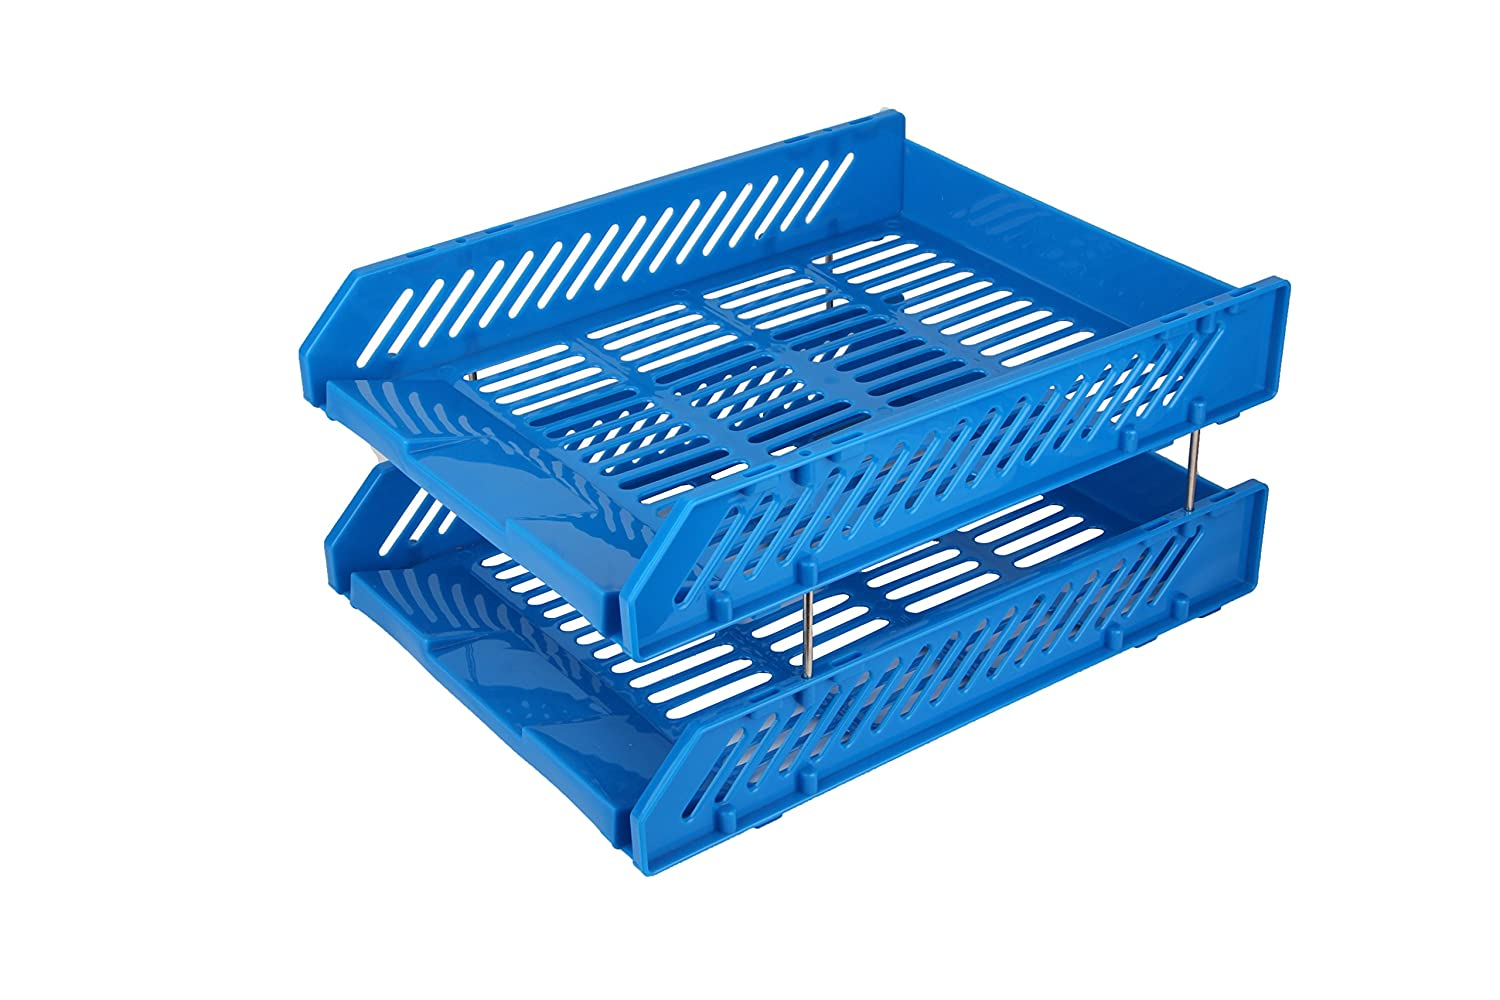 3f21af2cd7 Storage Trays: Buy Storage Trays Online at Best Prices in India ...